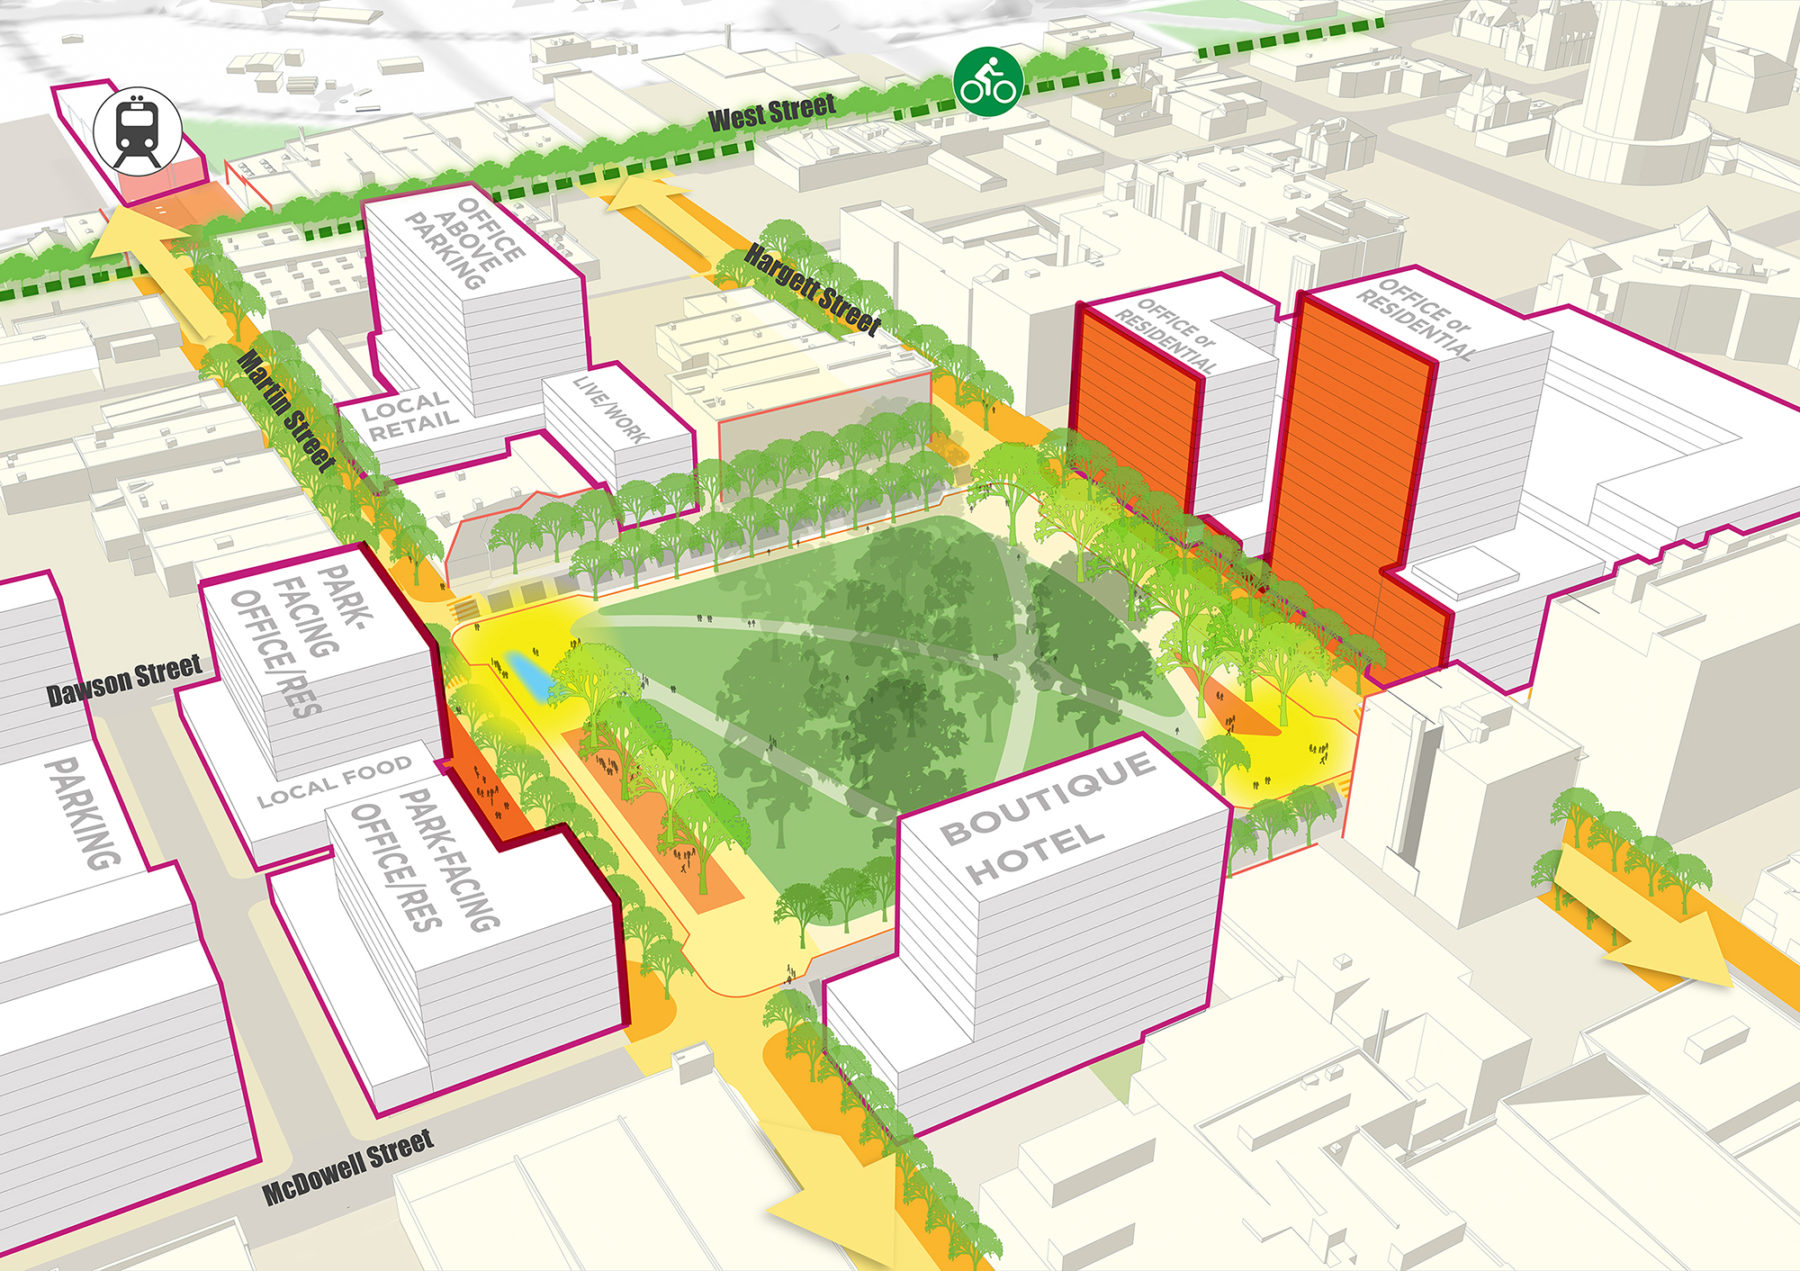 Site plan of downtown Raleigh with park in the middle surrounded by buildings